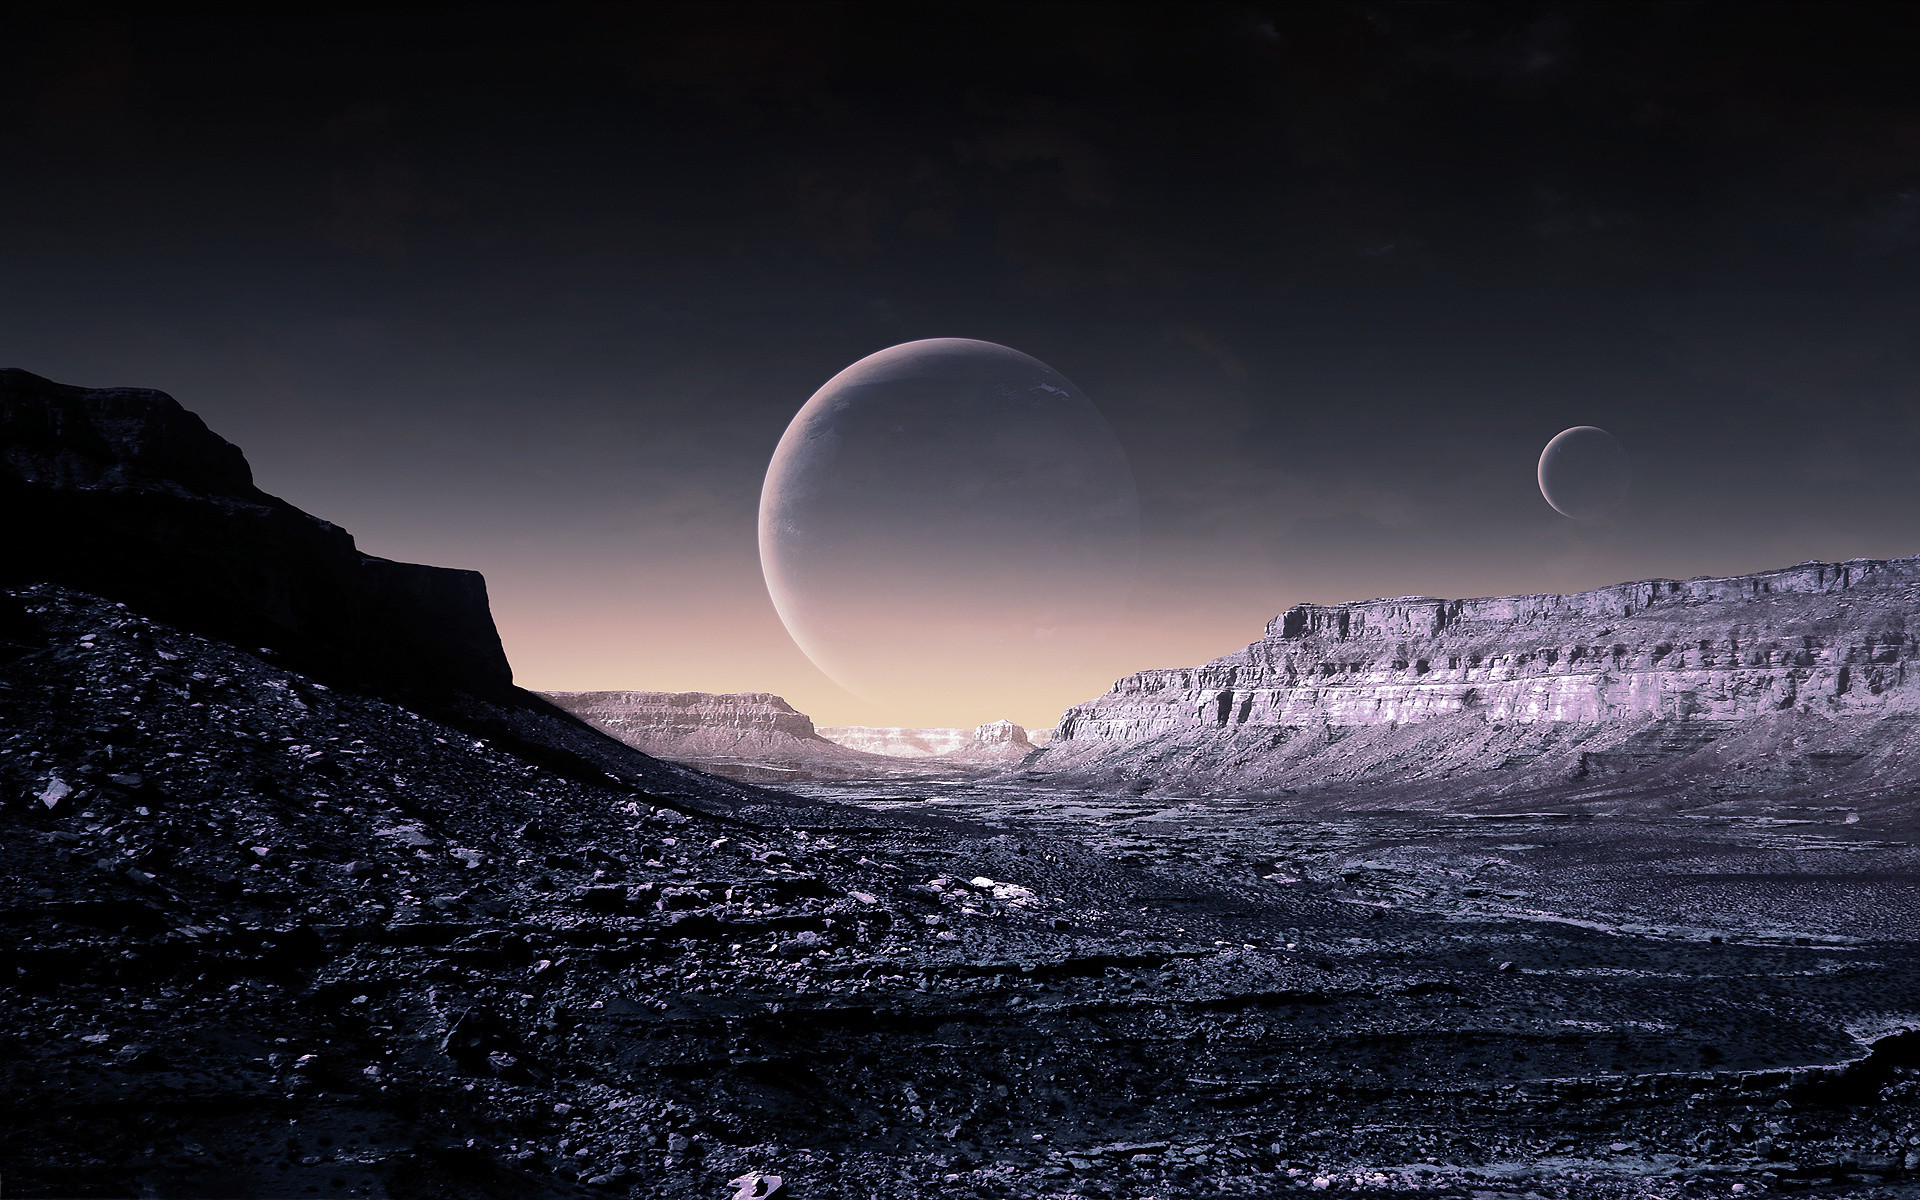 Fantasy planet surface